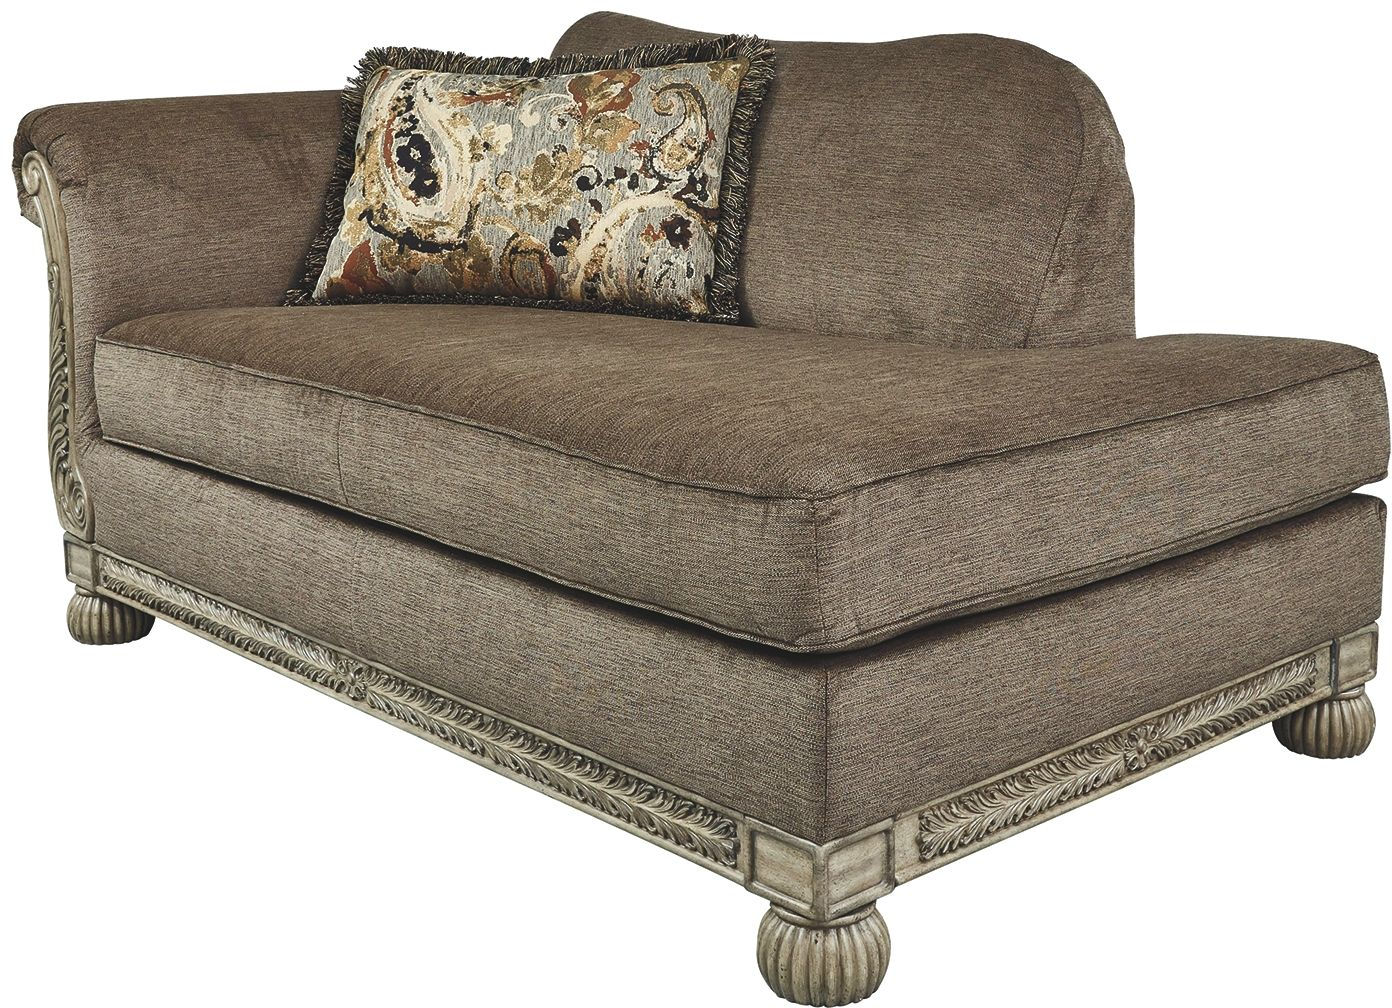 Swell Chaise Sofas Hutchs Home Furnishings Onthecornerstone Fun Painted Chair Ideas Images Onthecornerstoneorg